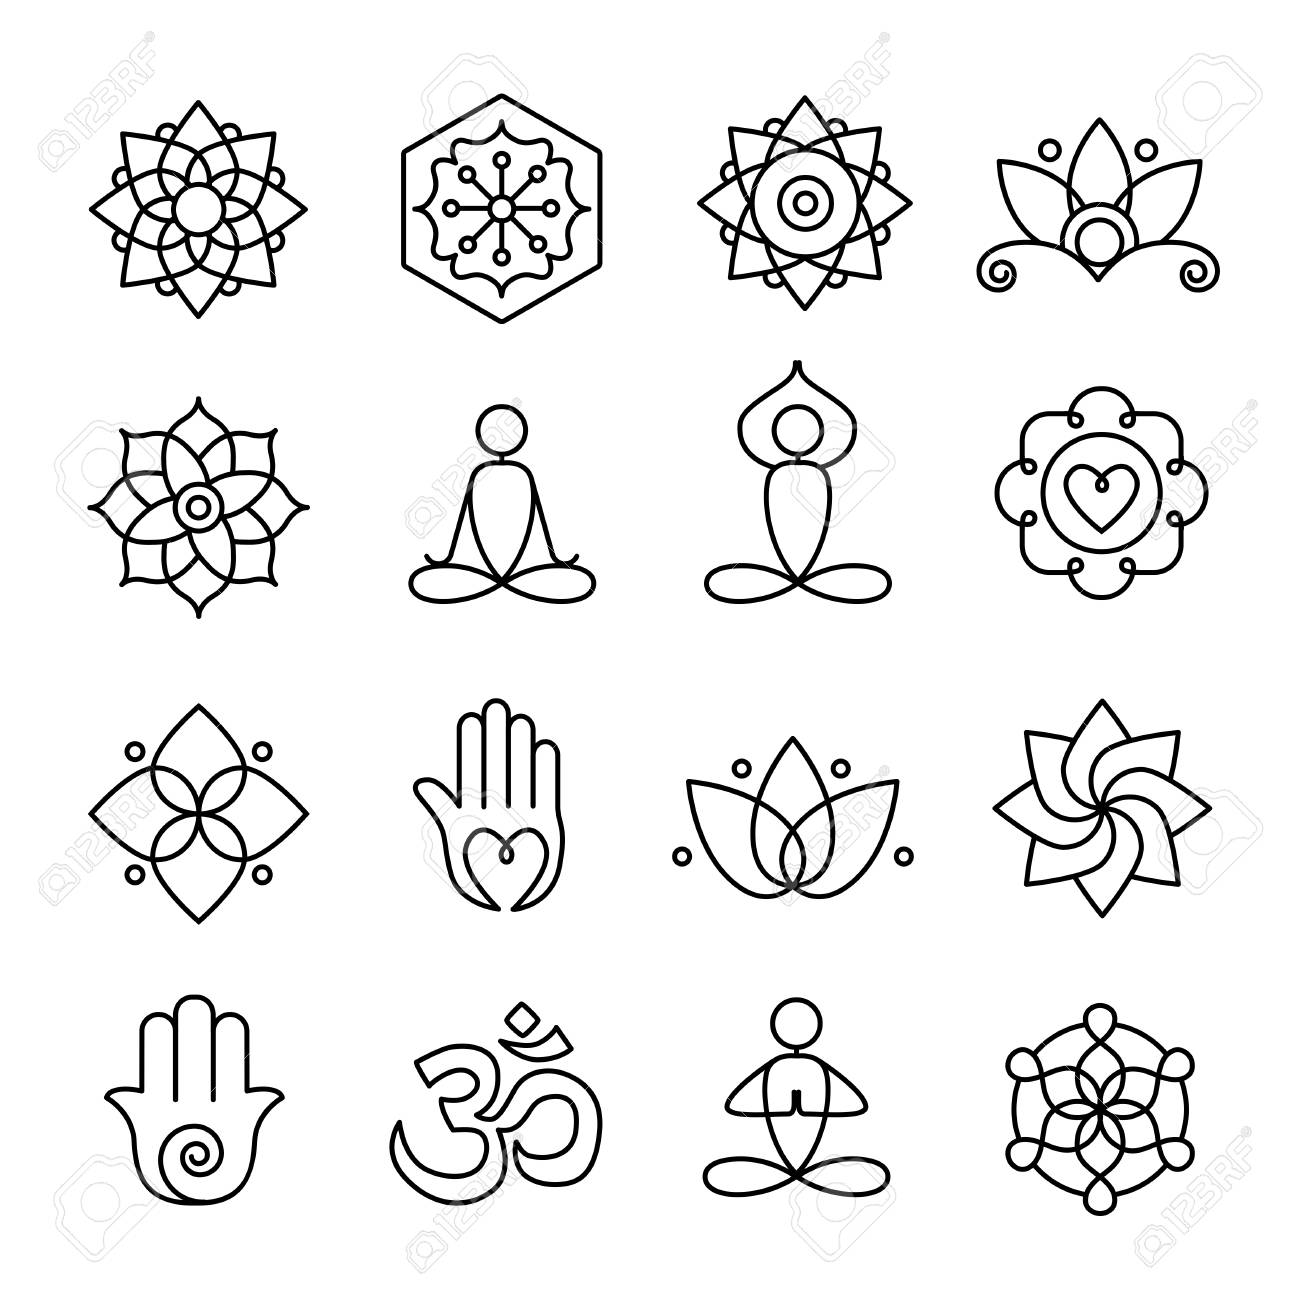 Collection Of Yoga Icons Relaxation And Meditation Symbols Royalty Free Cliparts Vectors And Stock Illustration Image 90966317